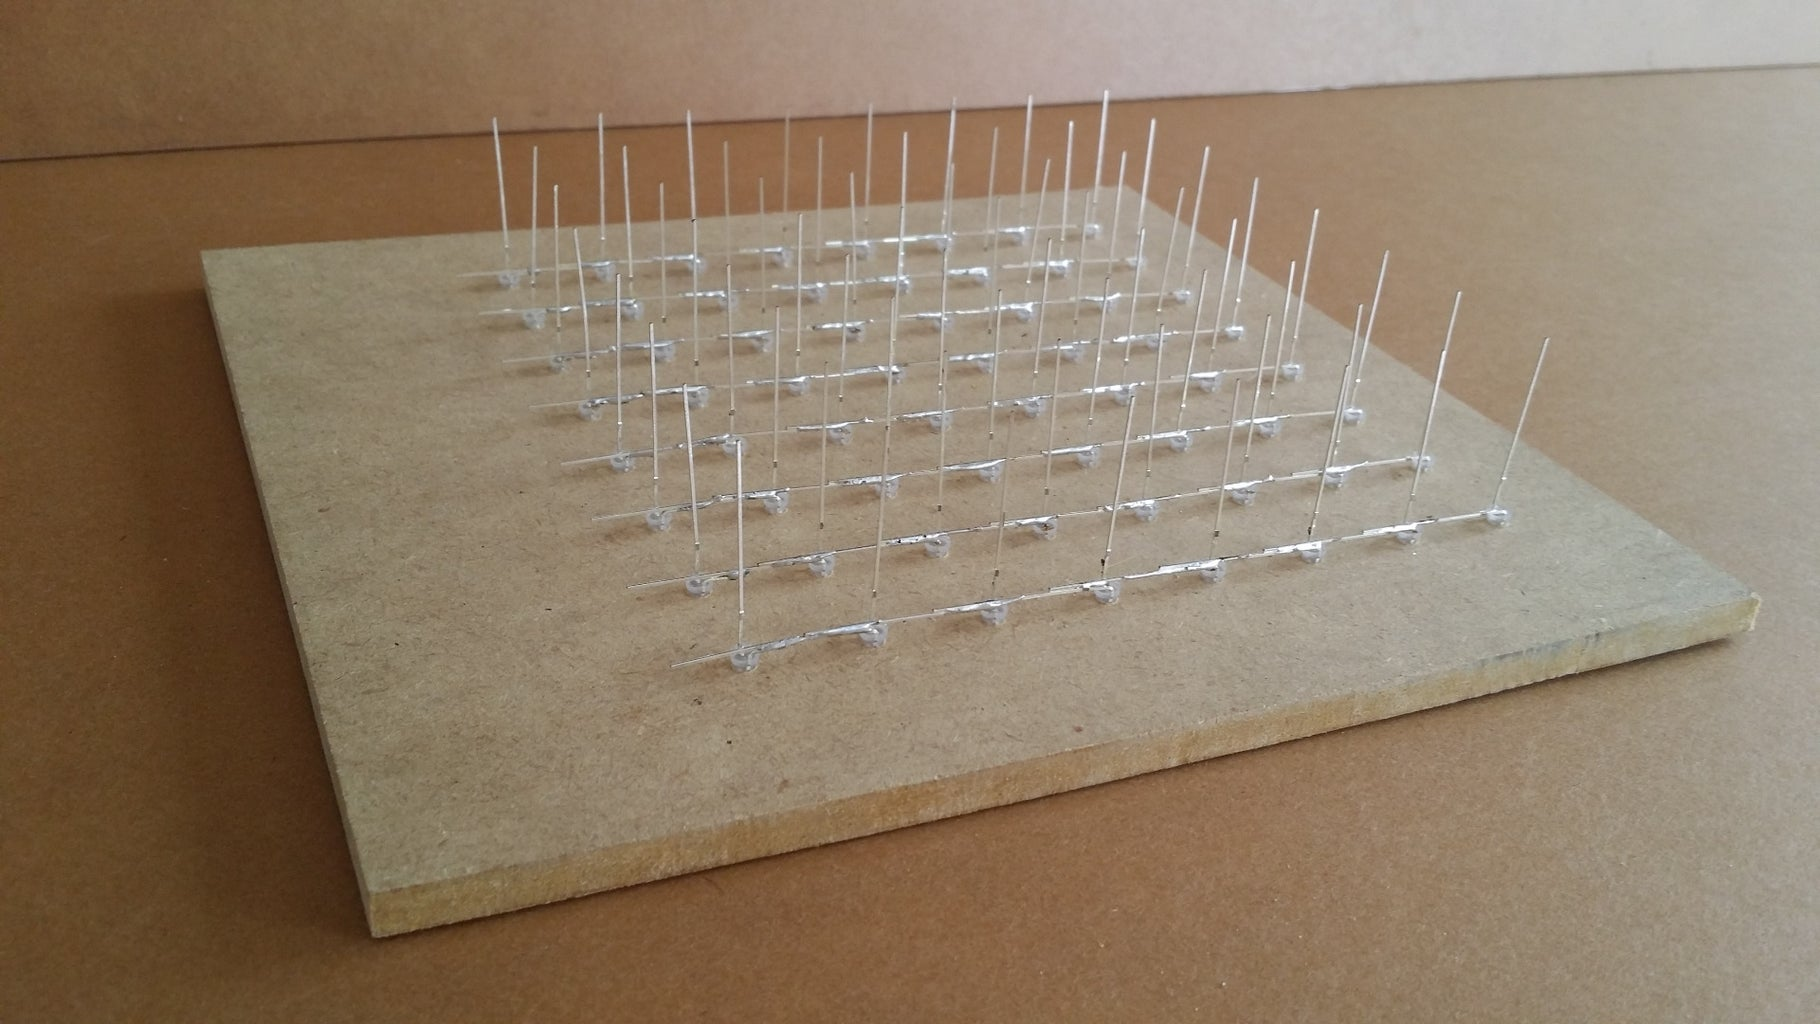 Assembly Part 1 - Build 8 Layers of 8x8 LED Matrix